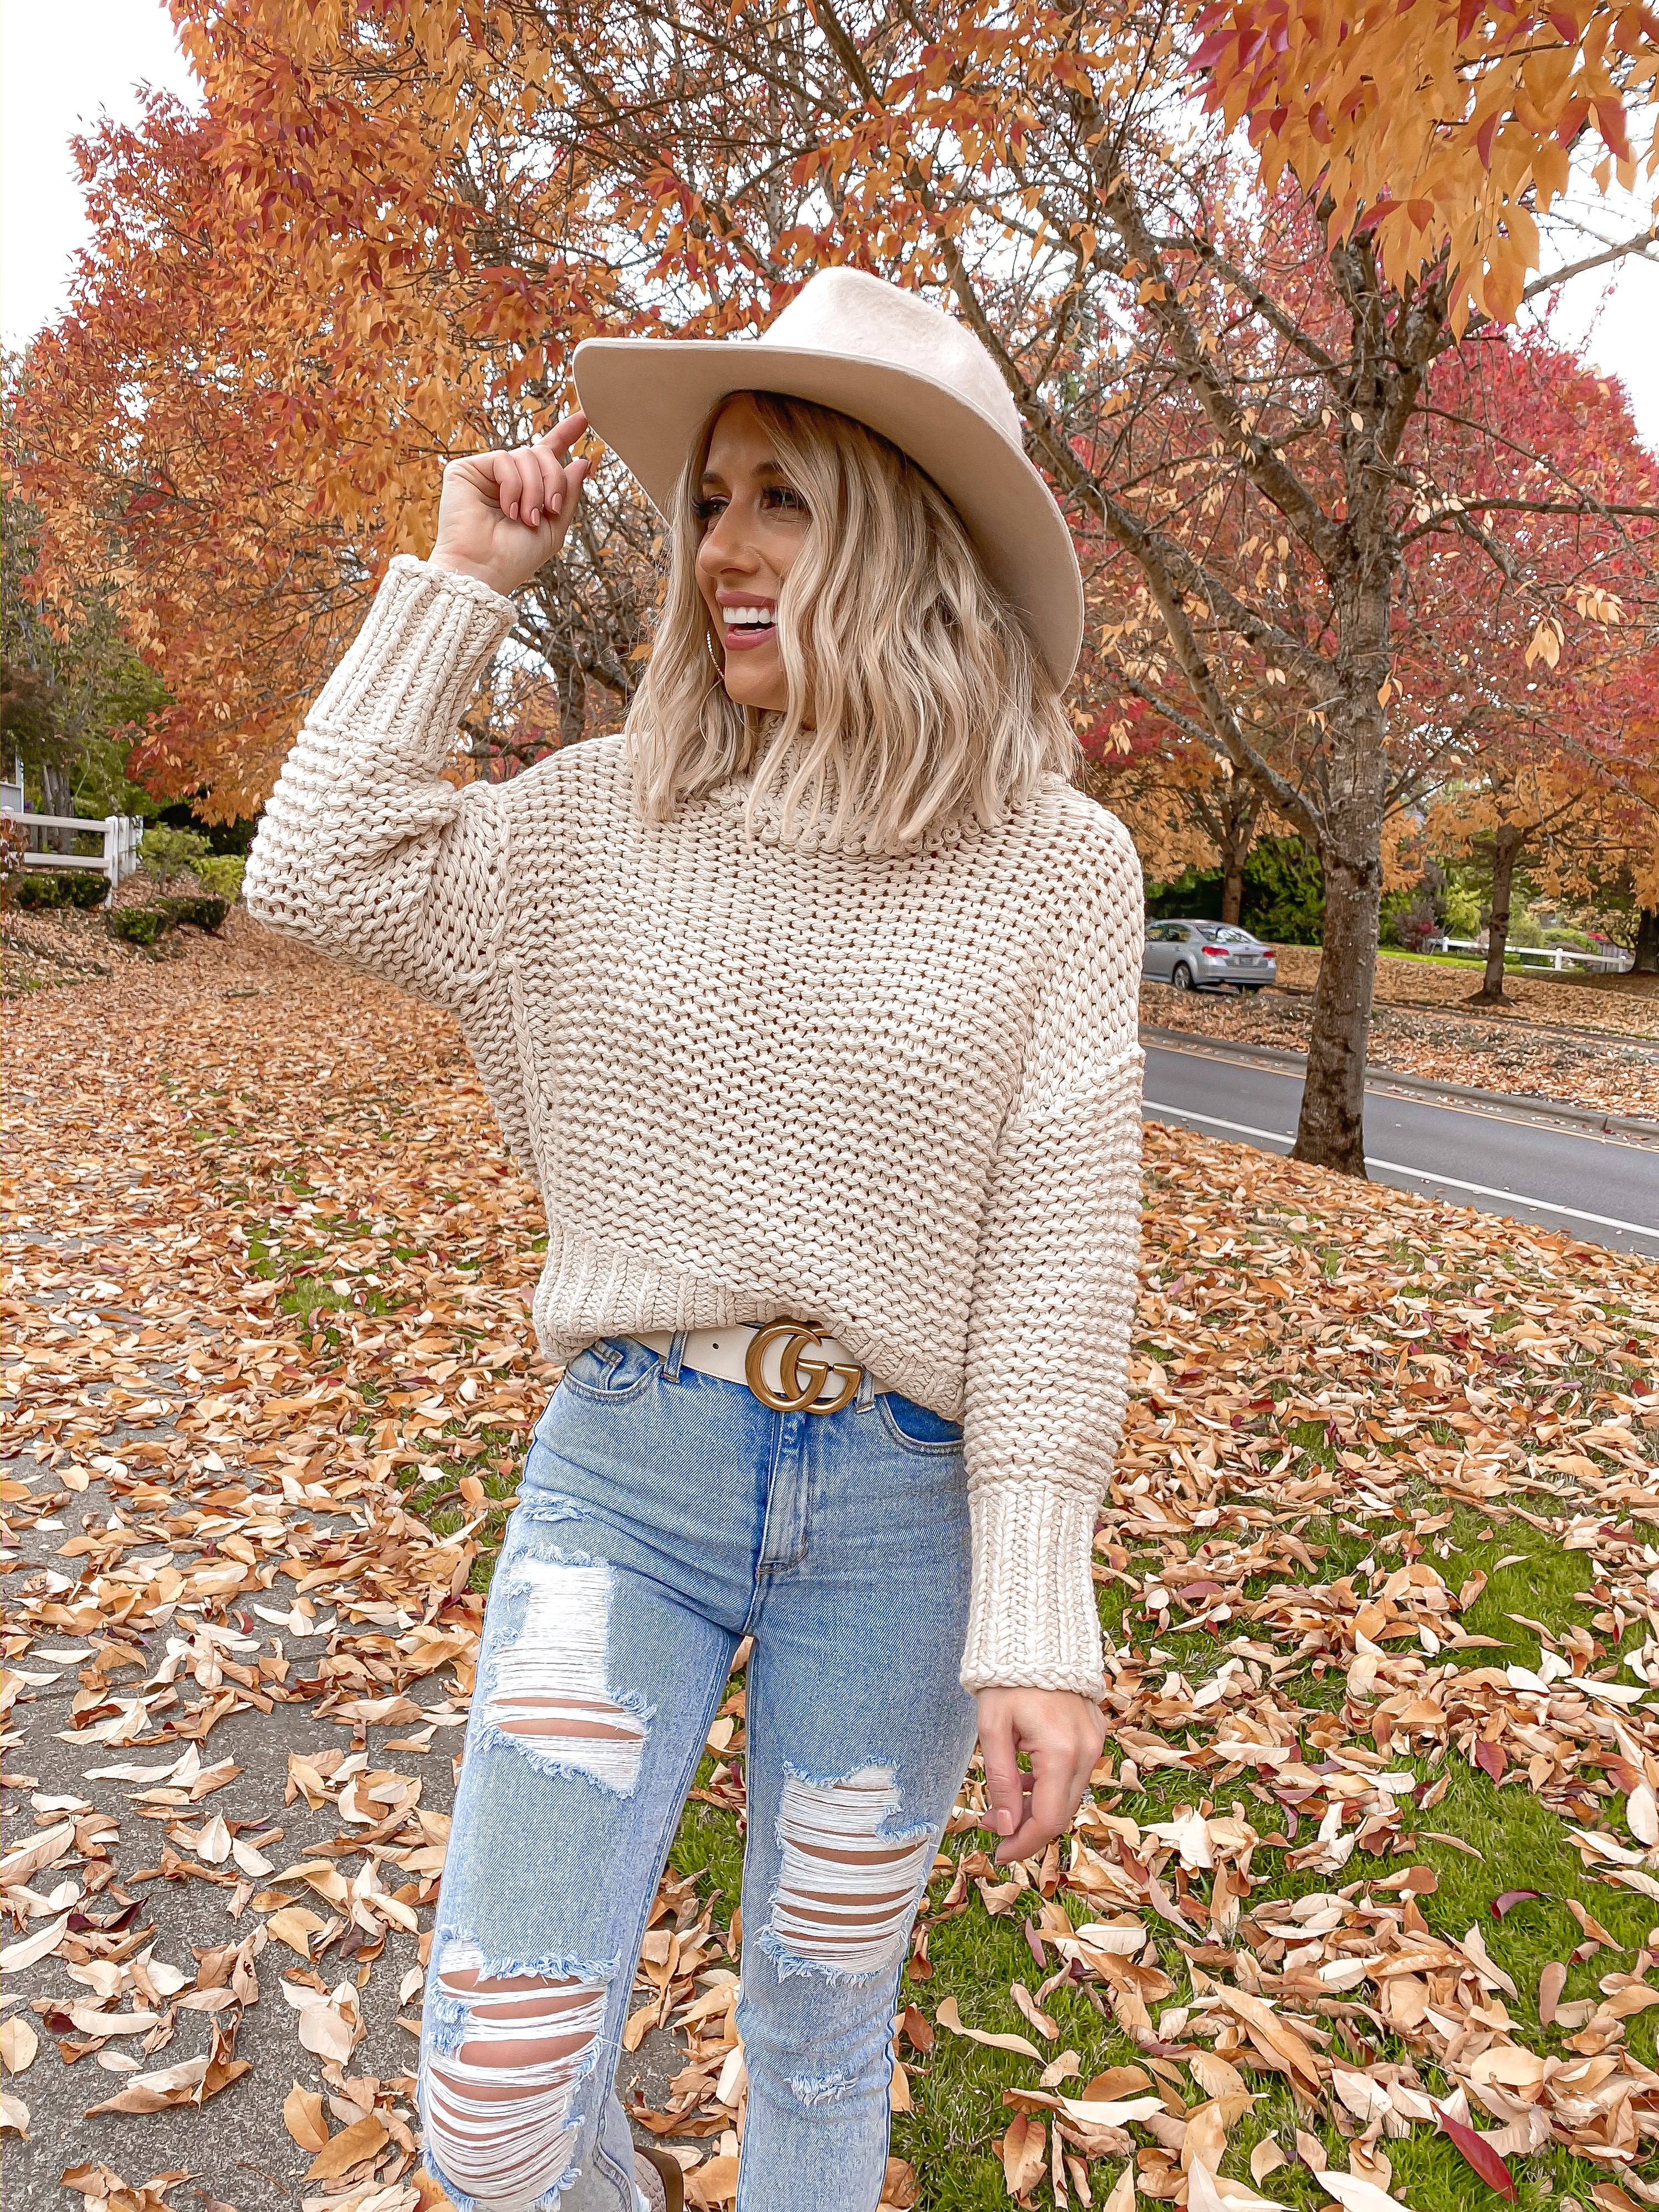 LEAVES COZY FALL OUTFIT IDEA LAURA BEVERLIN SHORT BLONDE HAIR 1